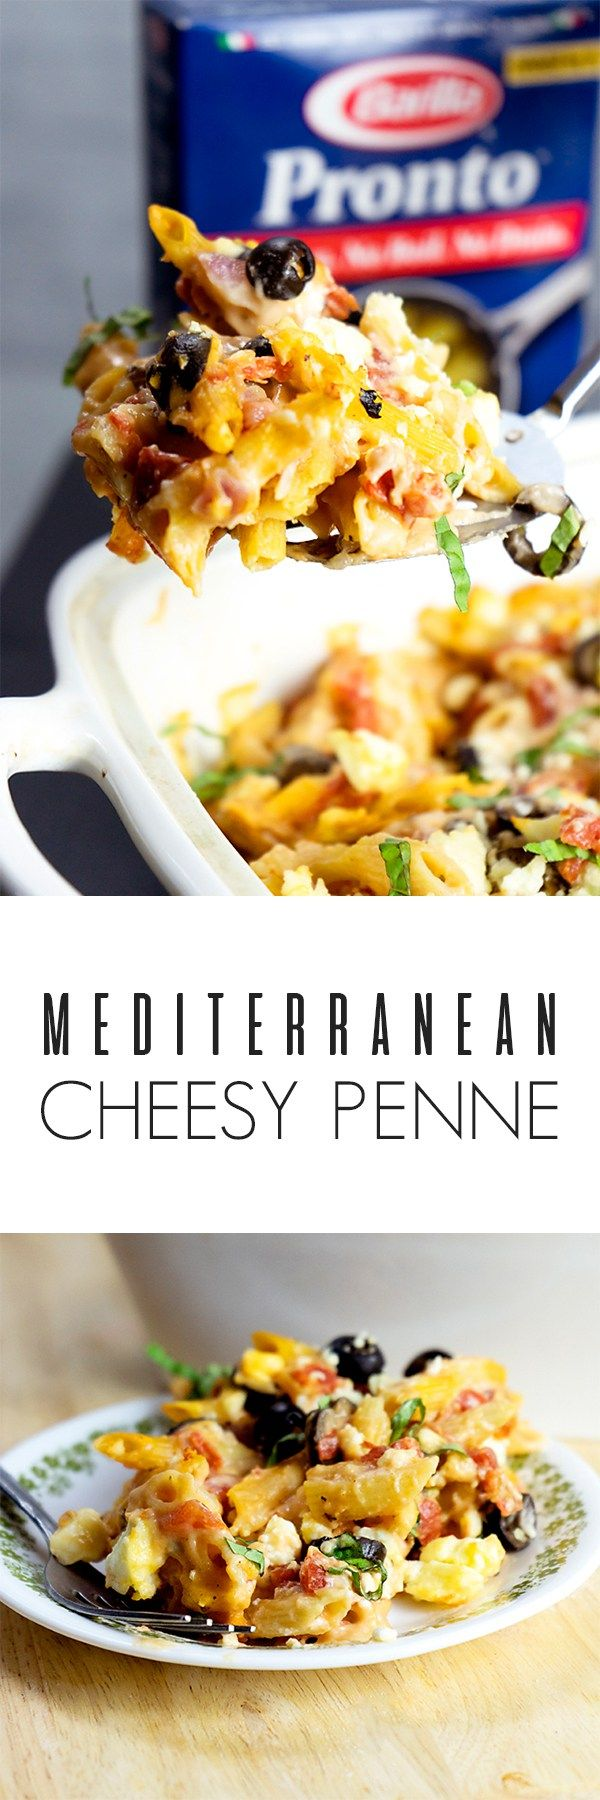 Mediterranean Cheesy Penne with Barilla® Pronto® Penne is the perfect one-pan meal to make for your family or to leave with the babysitter! | Kosher Recipes | Vegetarian Recipes | #WonderfulYourWay #ad